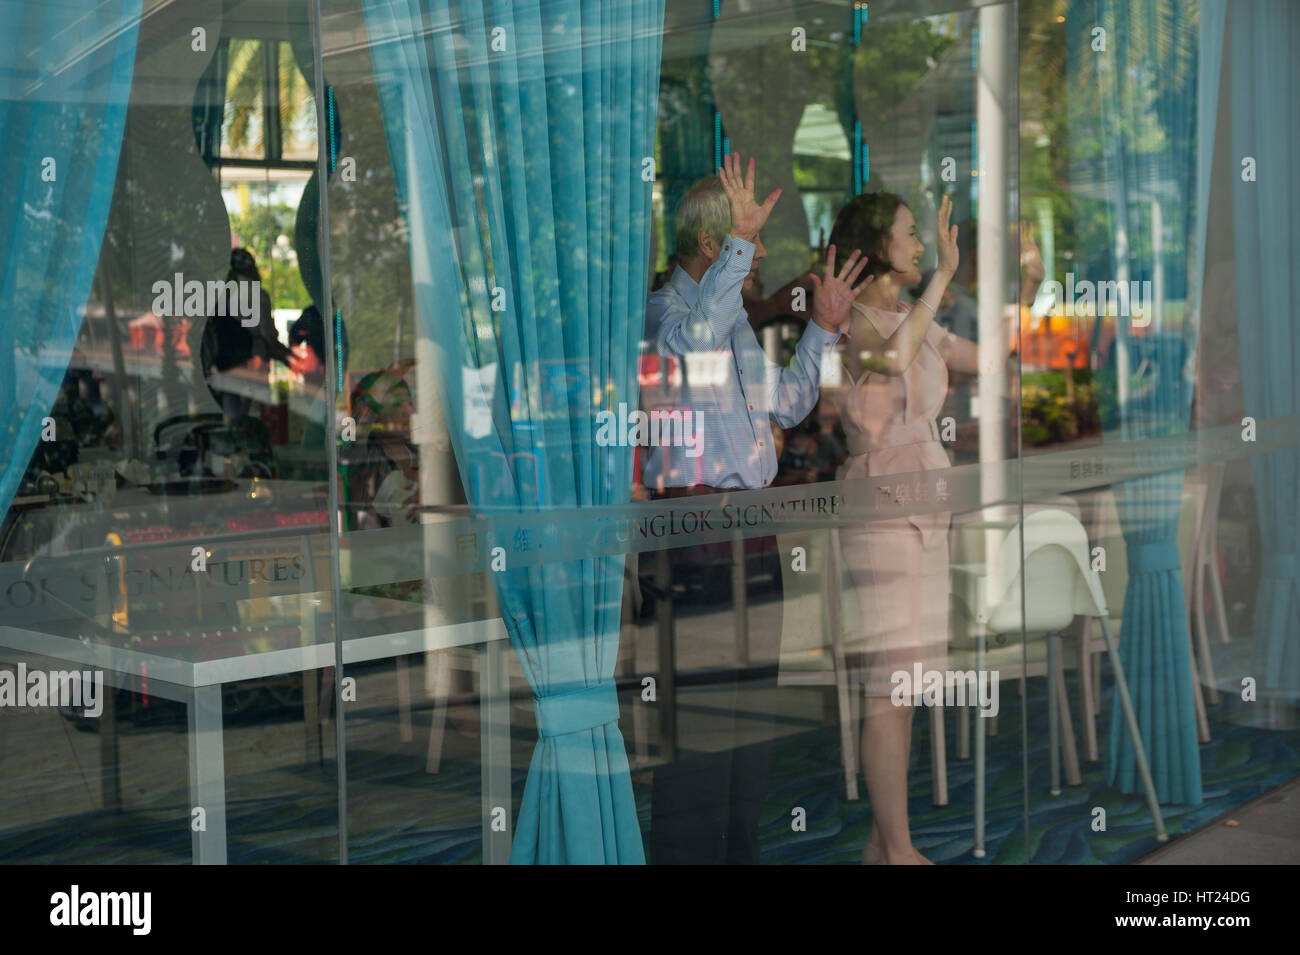 02.10.2016, Singapore, Republic of Singapore - People wave at children on the street from inside a restaurant at - Stock Image